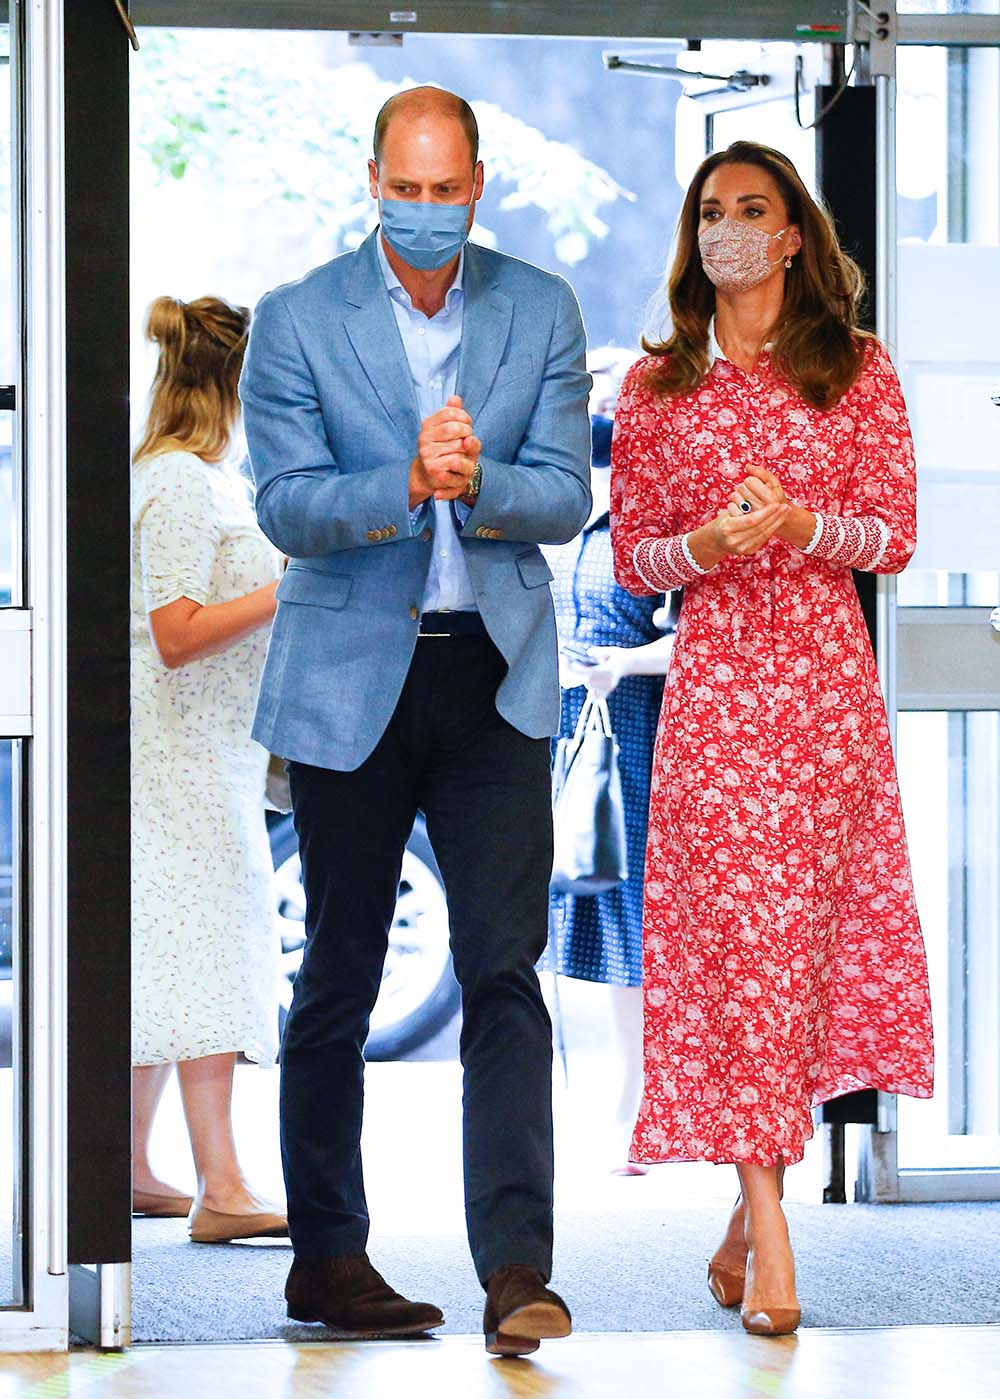 catherine-duchess-of-cambridge-in-beulah-london-for-the-beigel-bake-visit